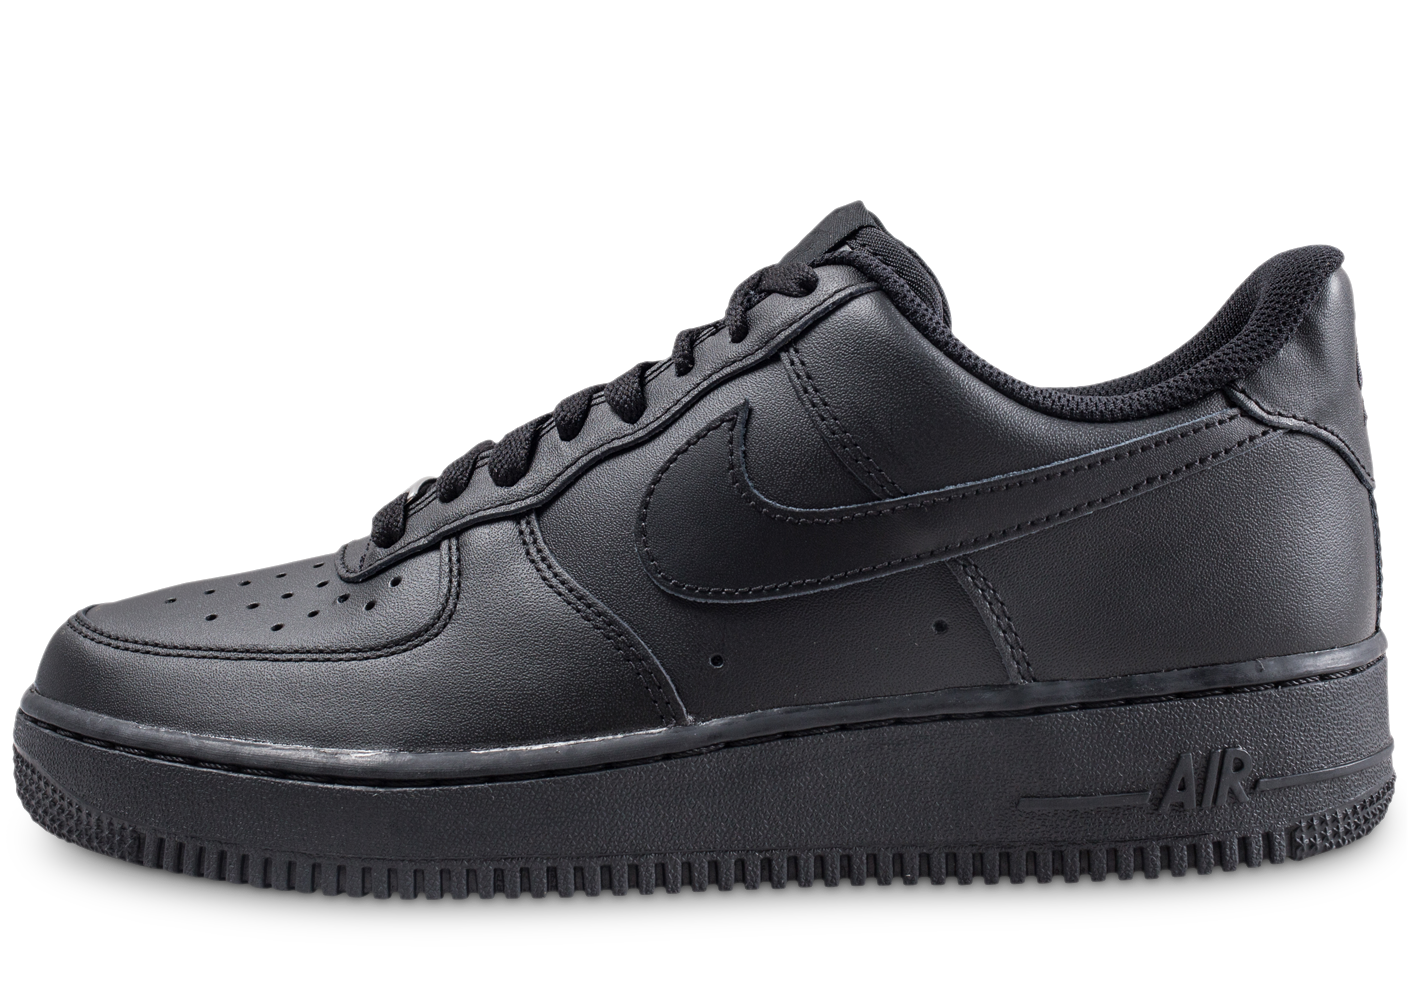 Nike Homme Air Force 1 Noire Baskets